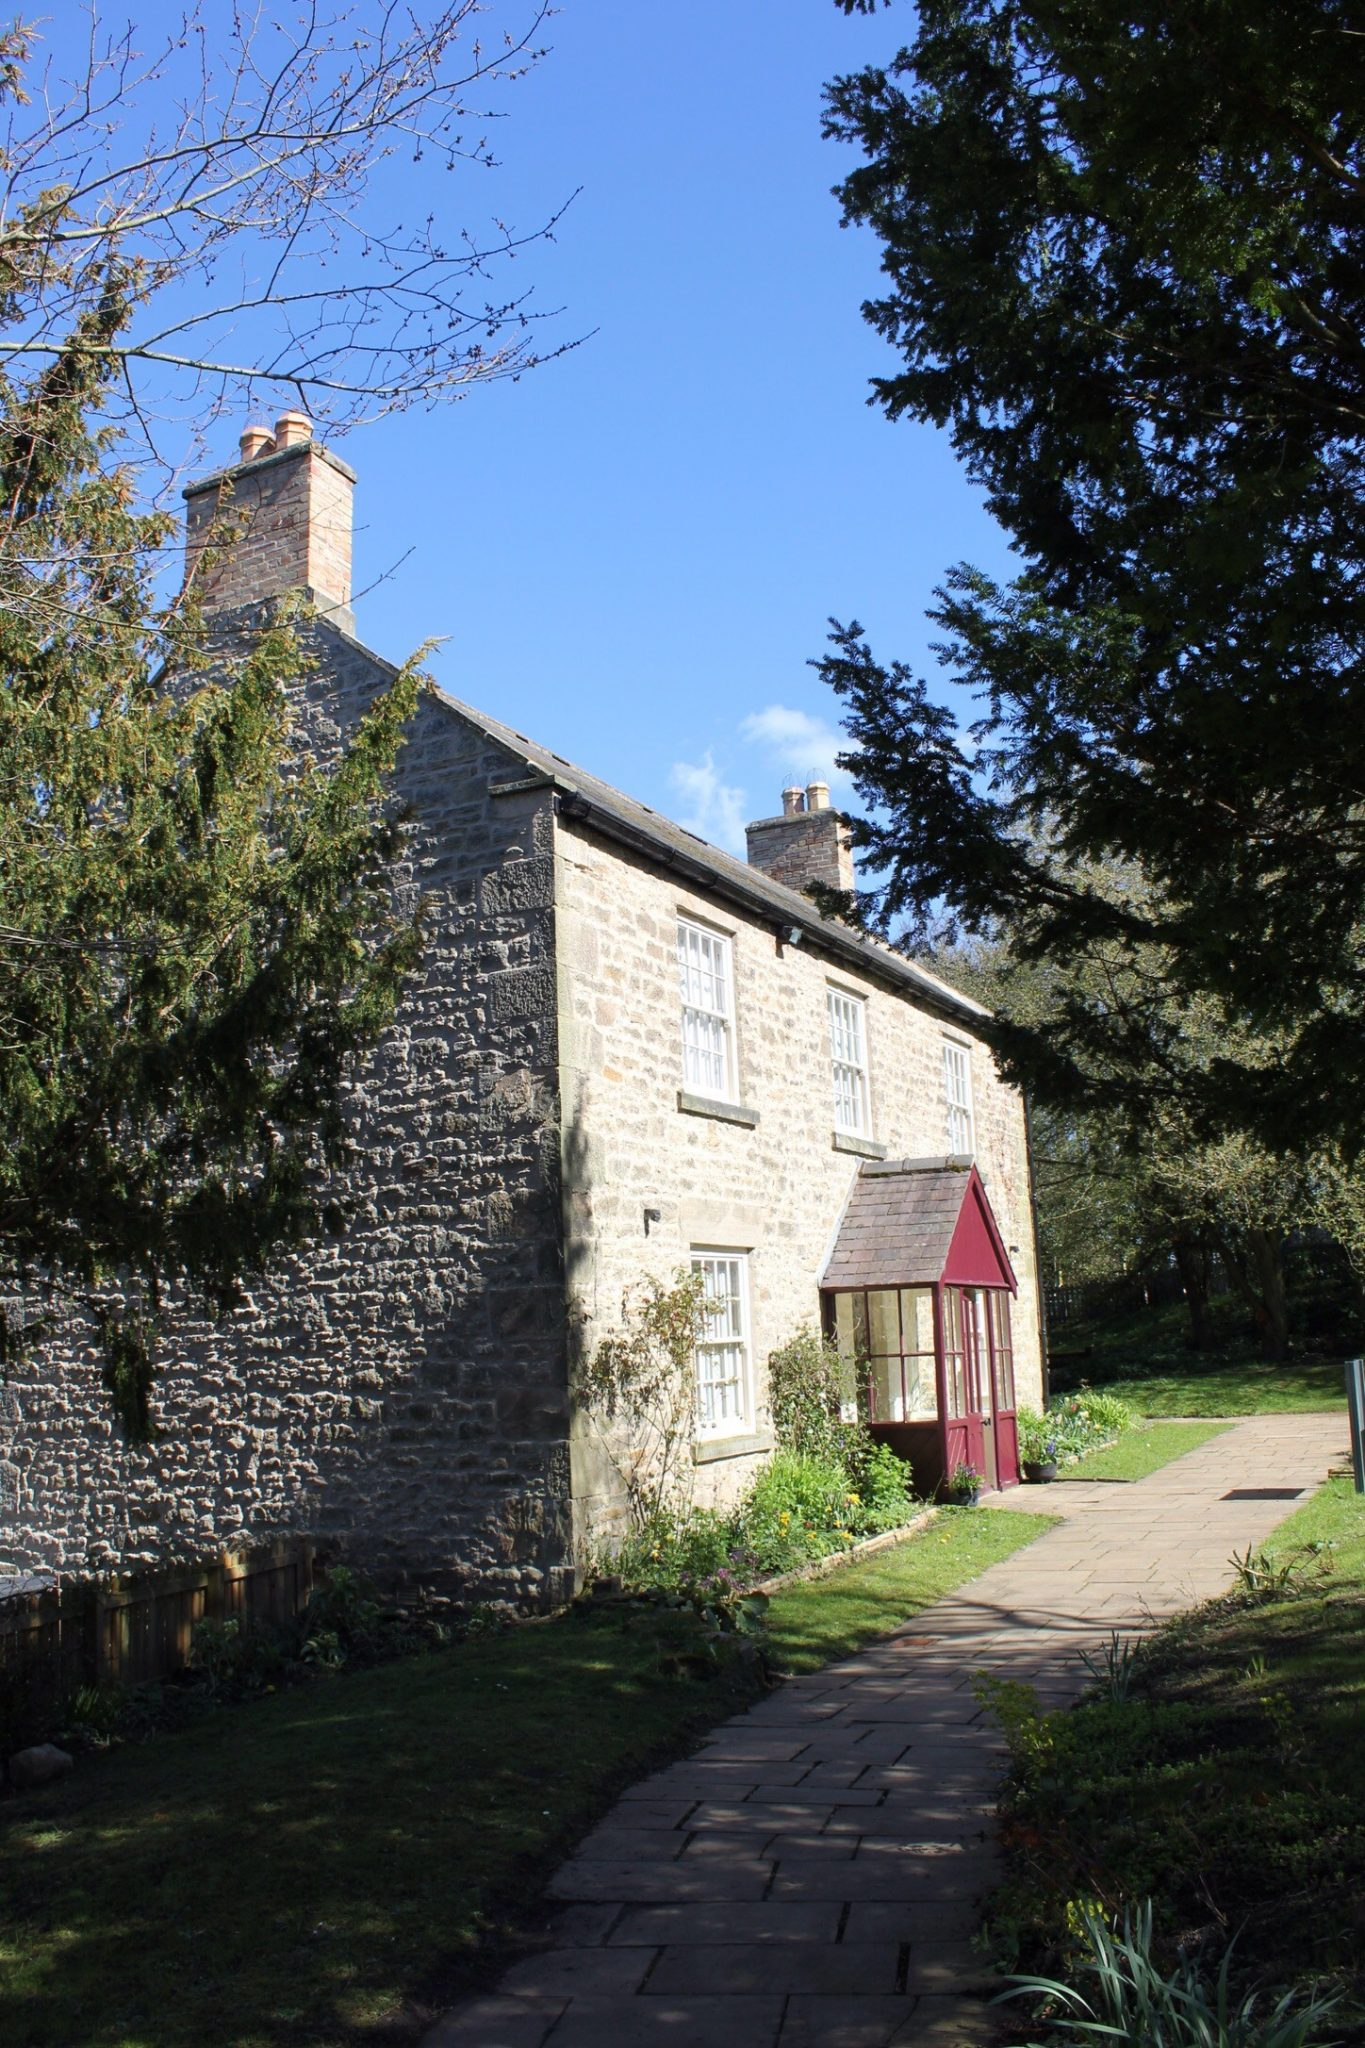 thomas beeick cottage cherryburn now a national trust property in mickley northumberland